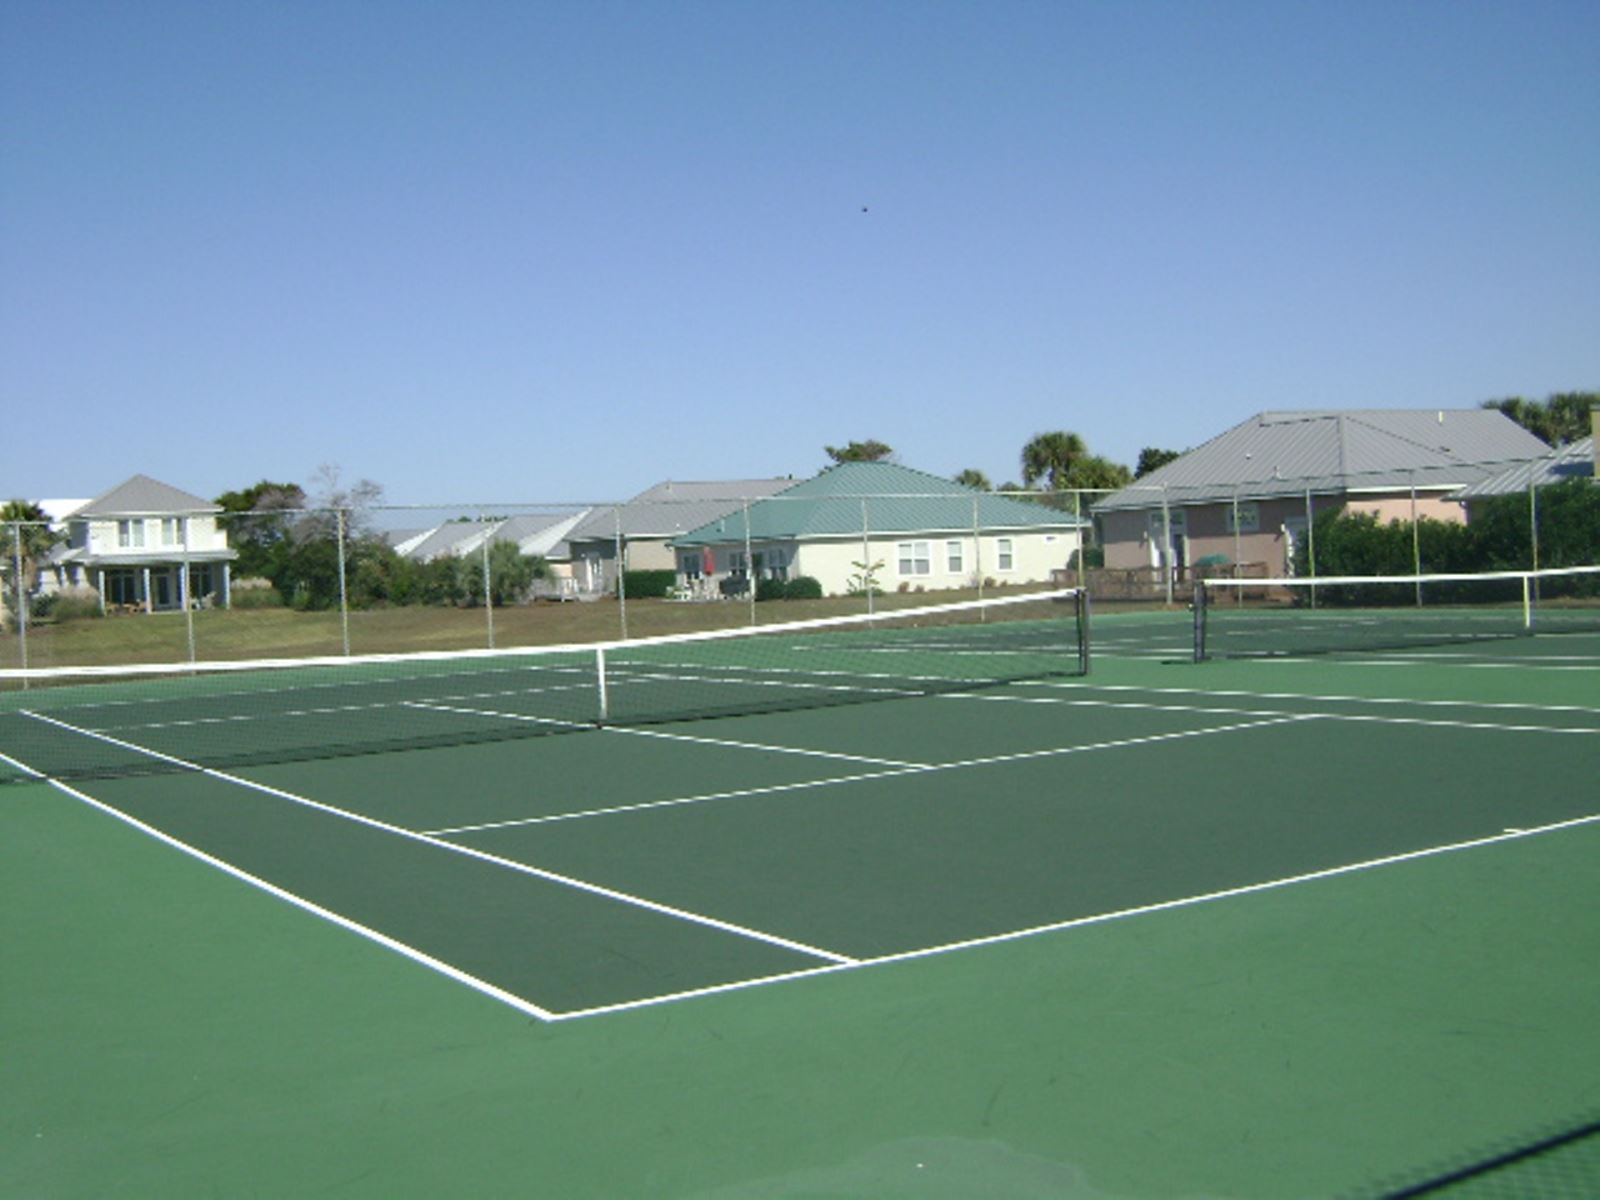 Free tennis for Maravilla Guests. Two newly refinished courts. First come, first serve!